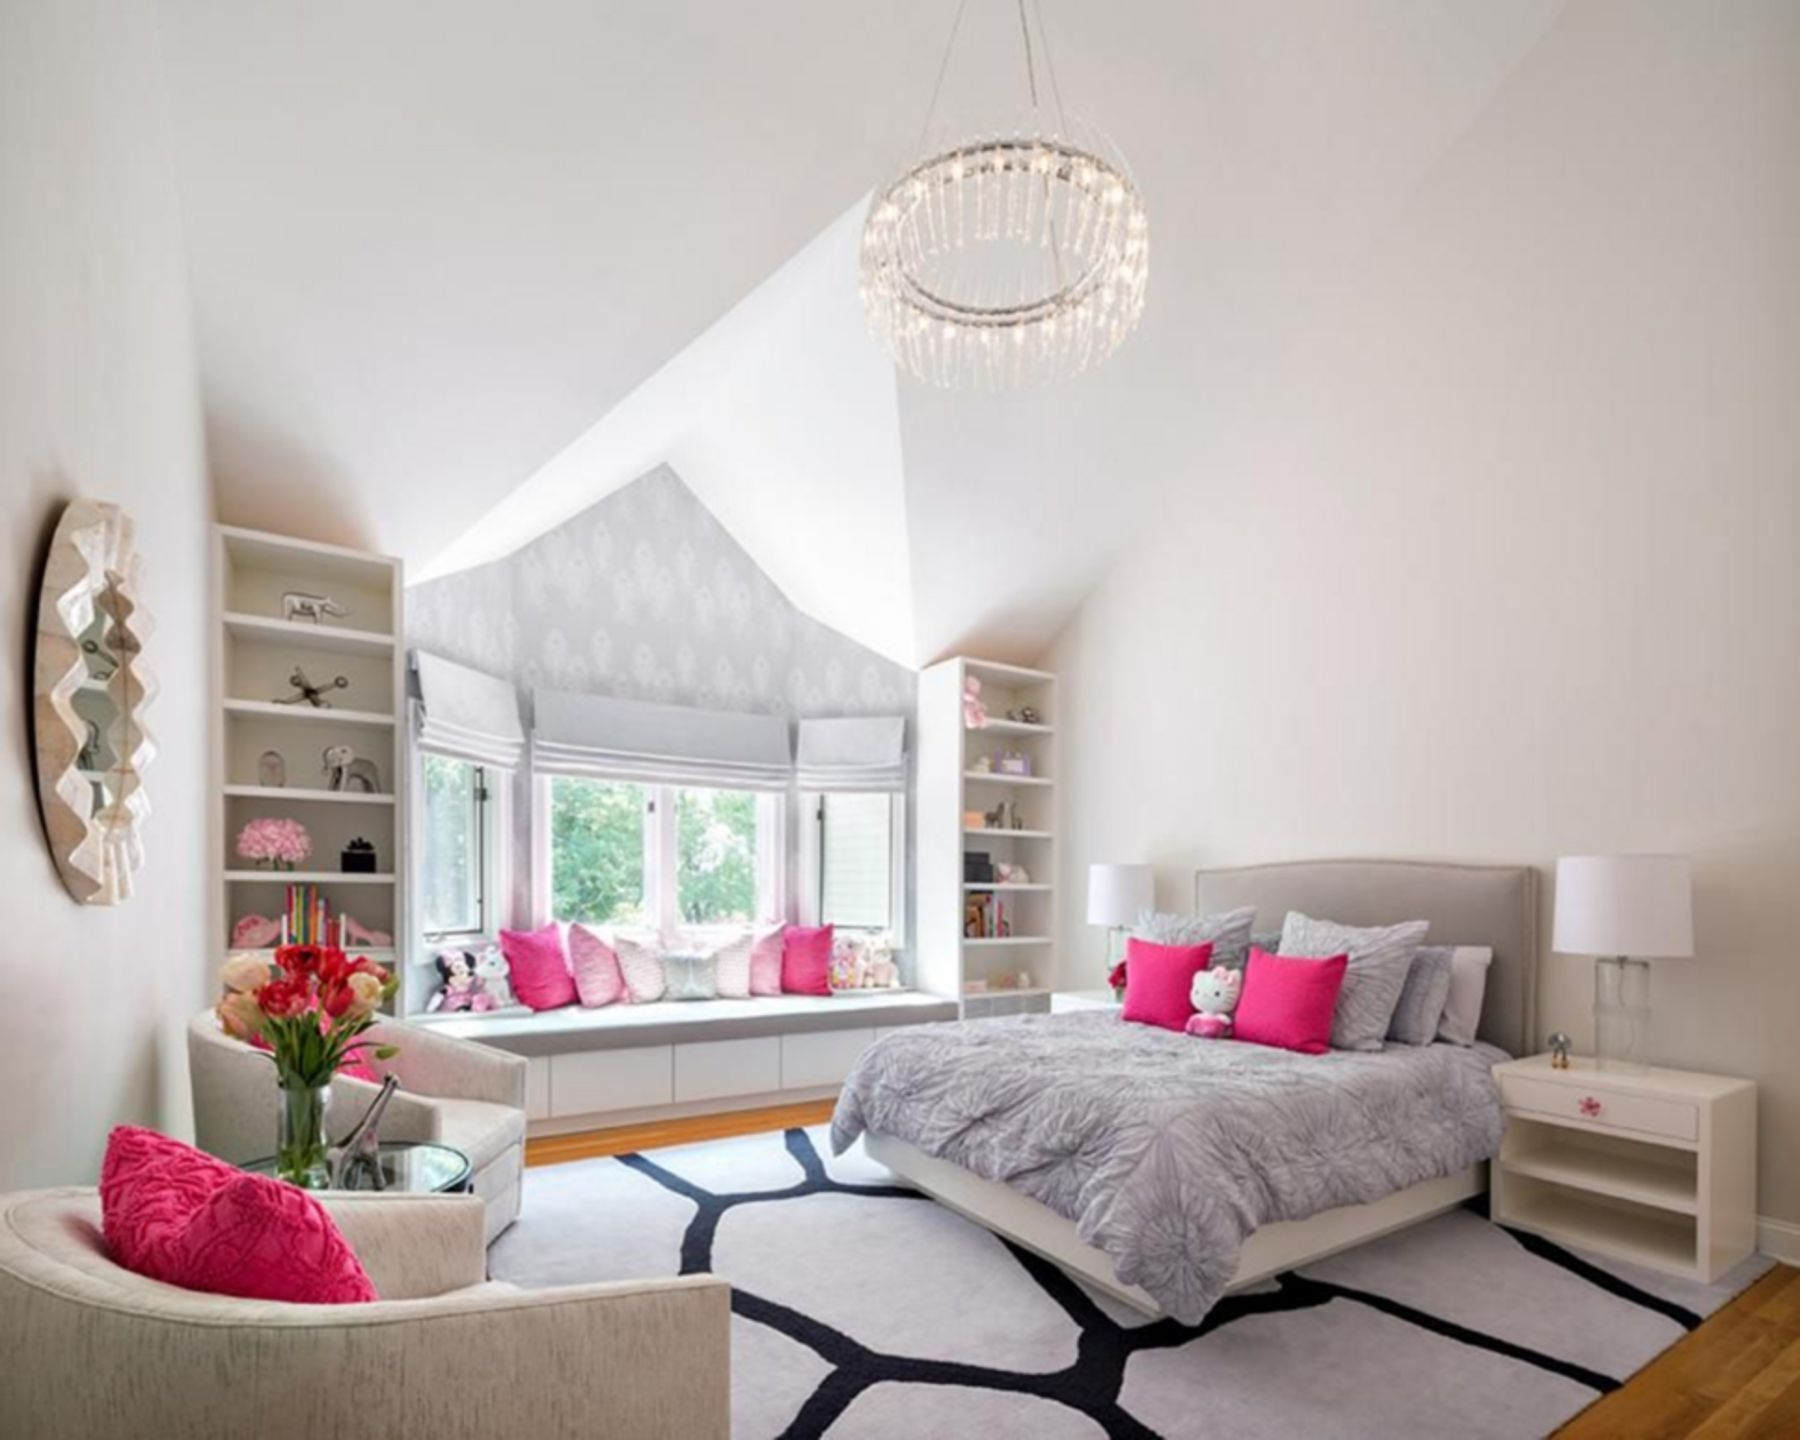 15 Beautiful Teenage Girl Bedroom Design Ideas To Make Your Teenage Girl Happy #teenagegirlbedrooms